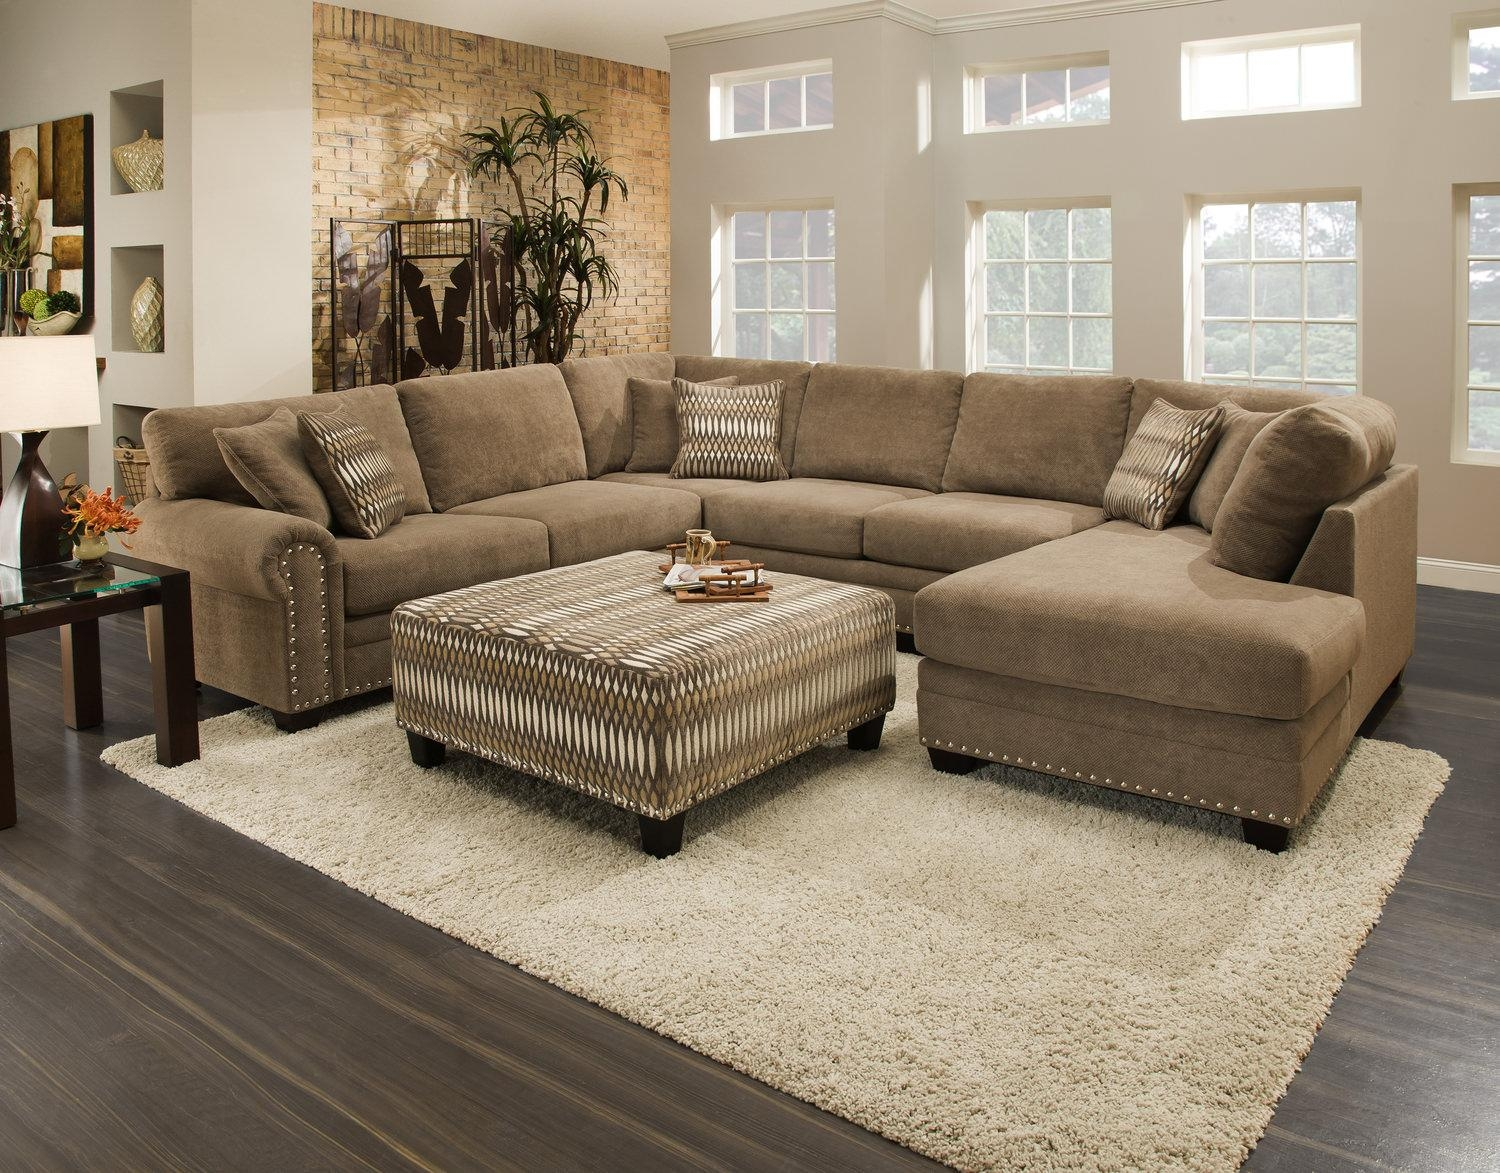 Sectional Sofas – Living Room Seating – Hom Furniture Throughout Wide Seat Sectional Sofas (View 18 of 20)